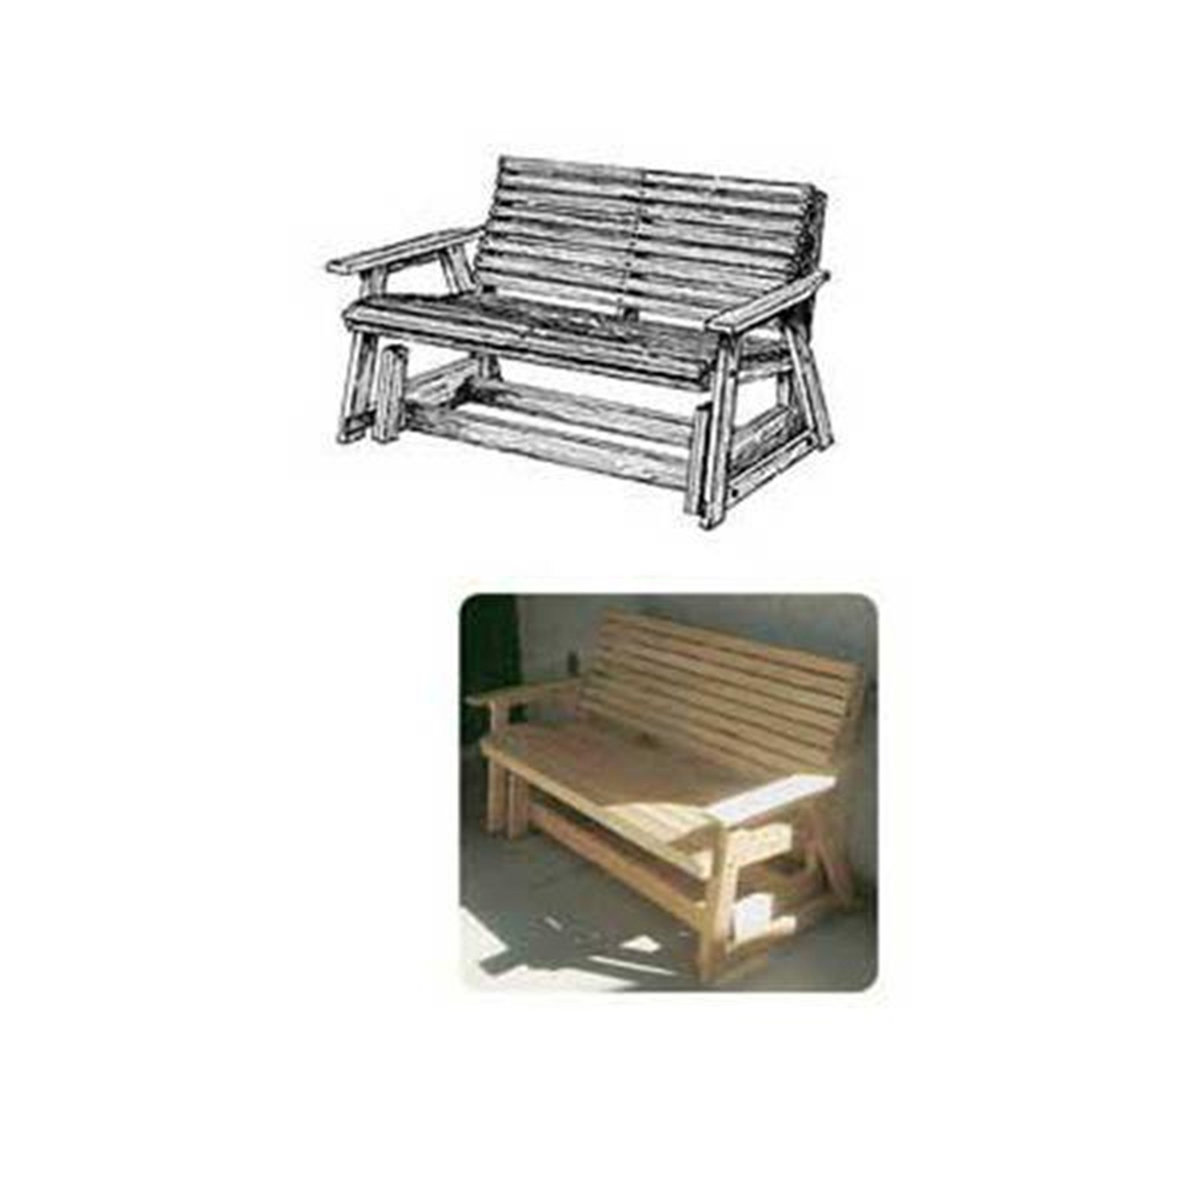 Woodcraft Woodworking Project Paper Plan To Build Glider Bench